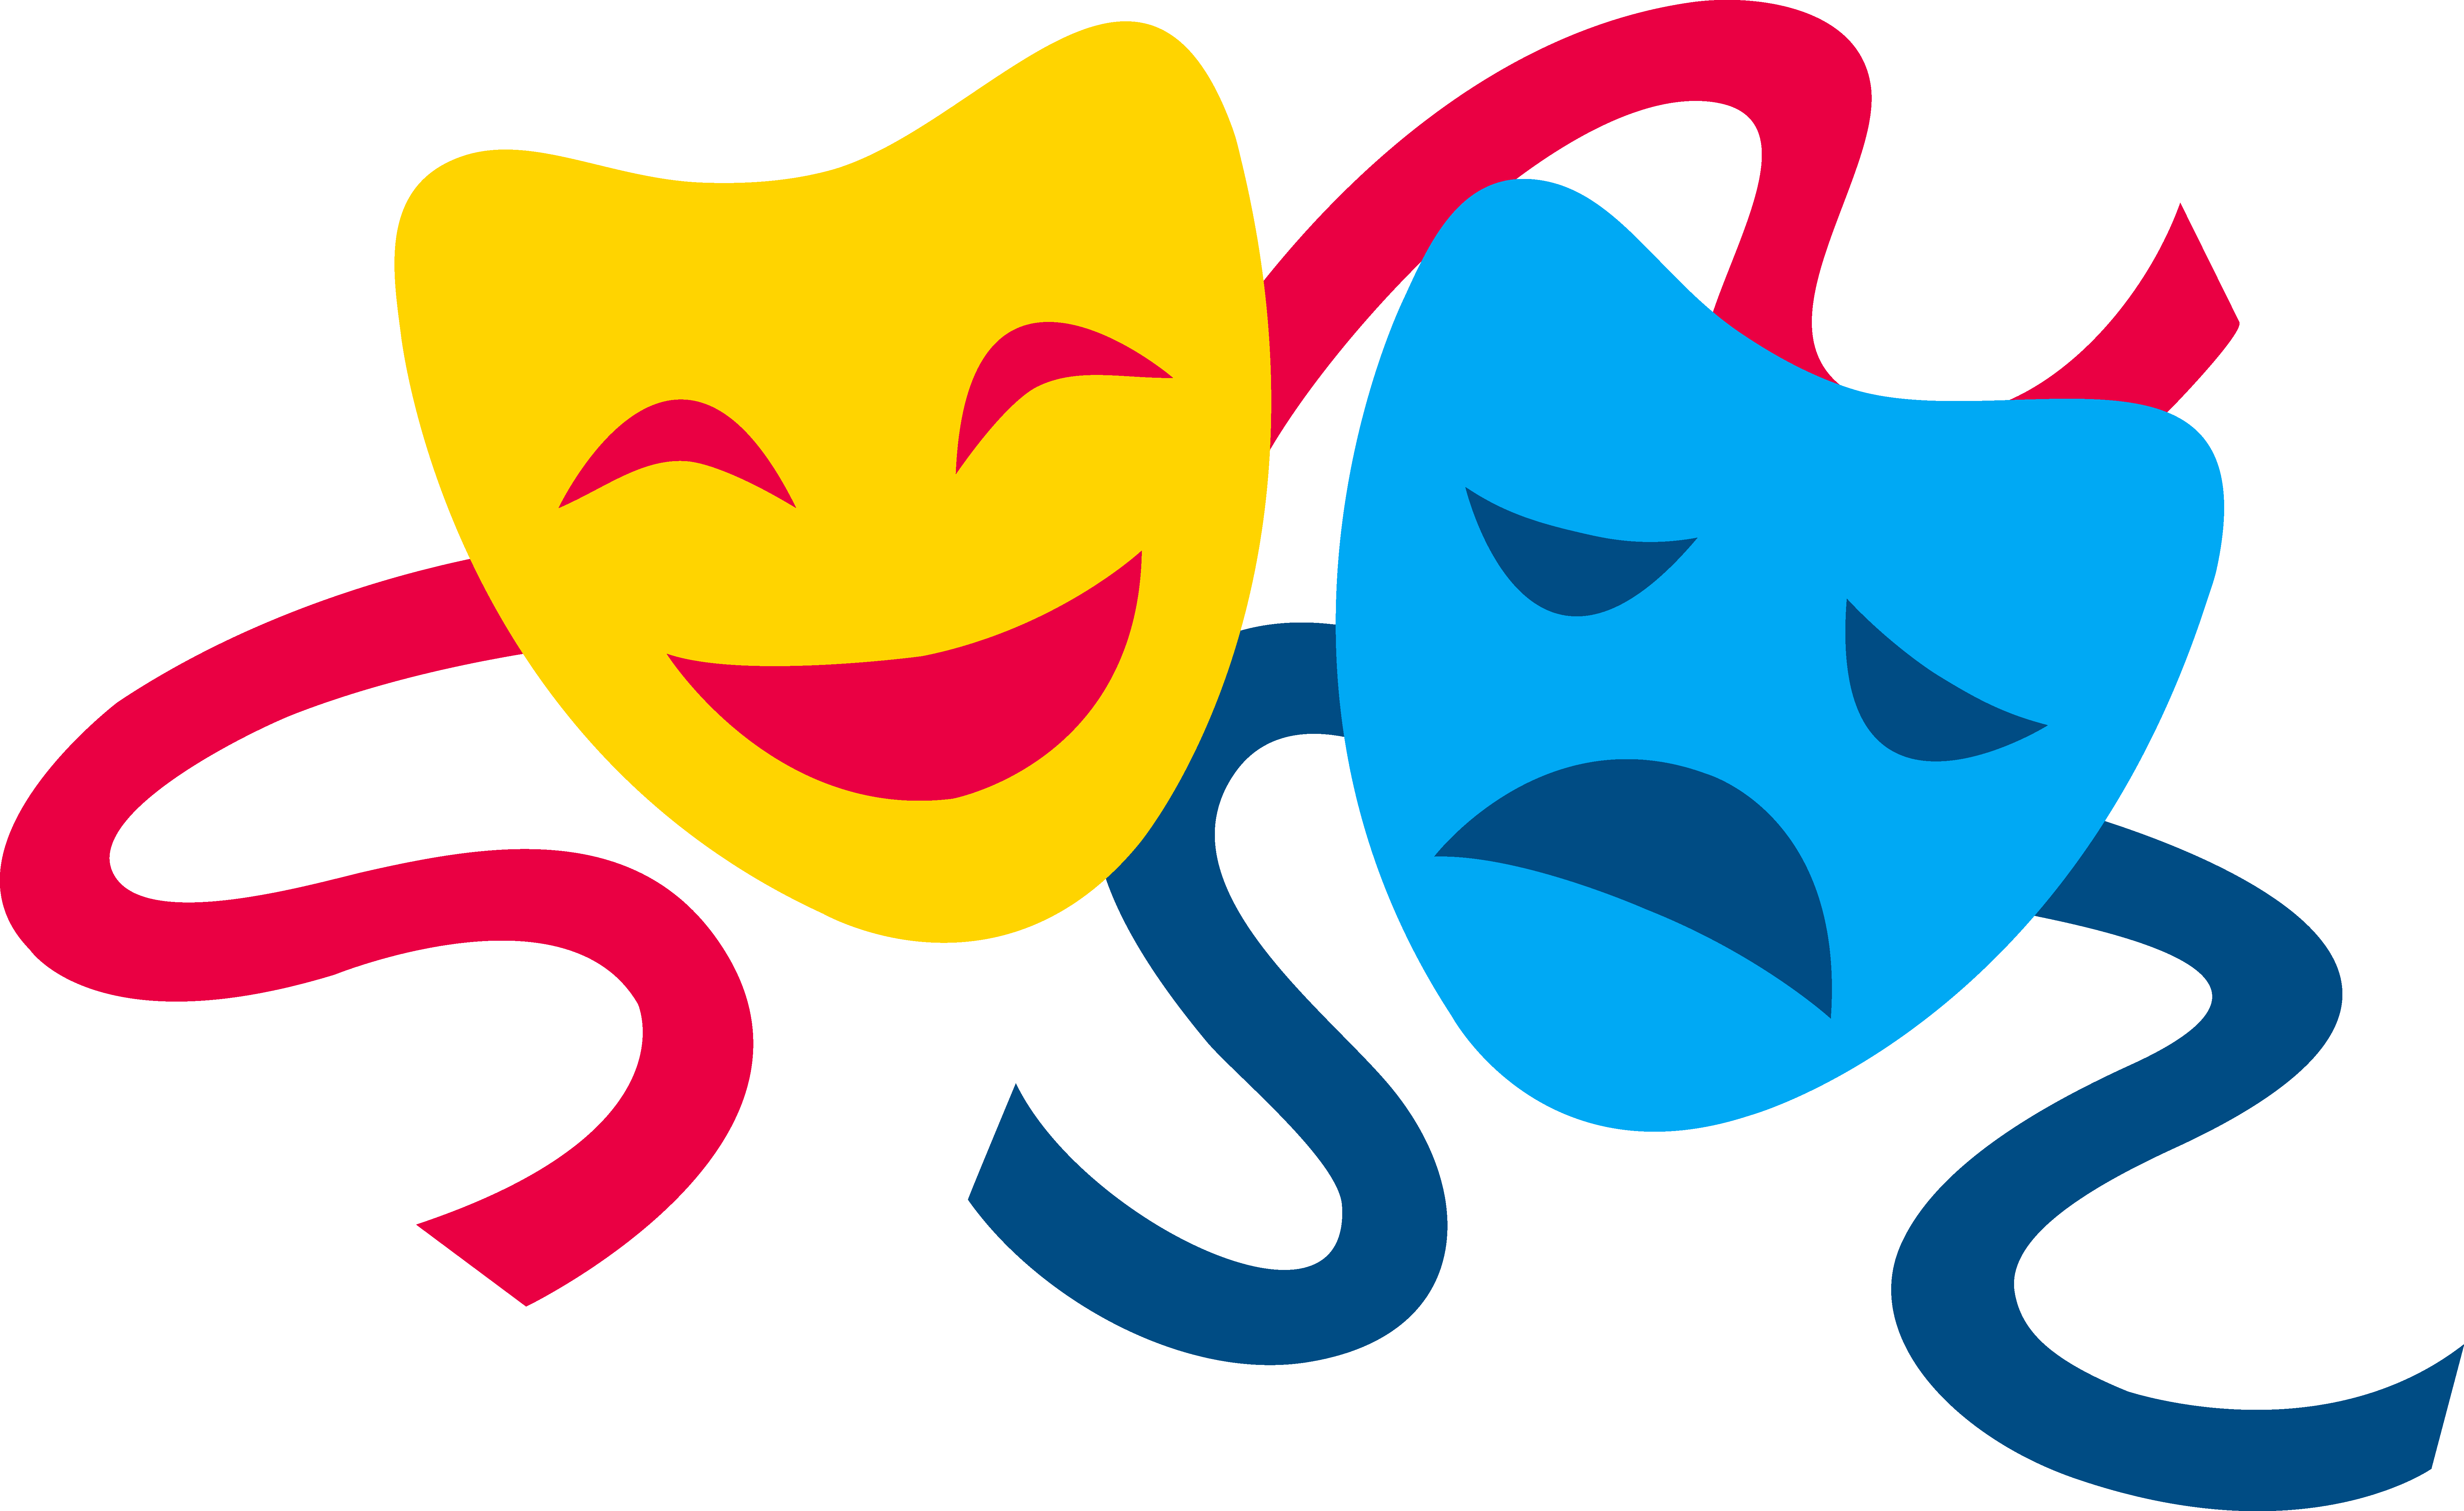 Clipart definition personal reflection. Comedy and tragedy masks